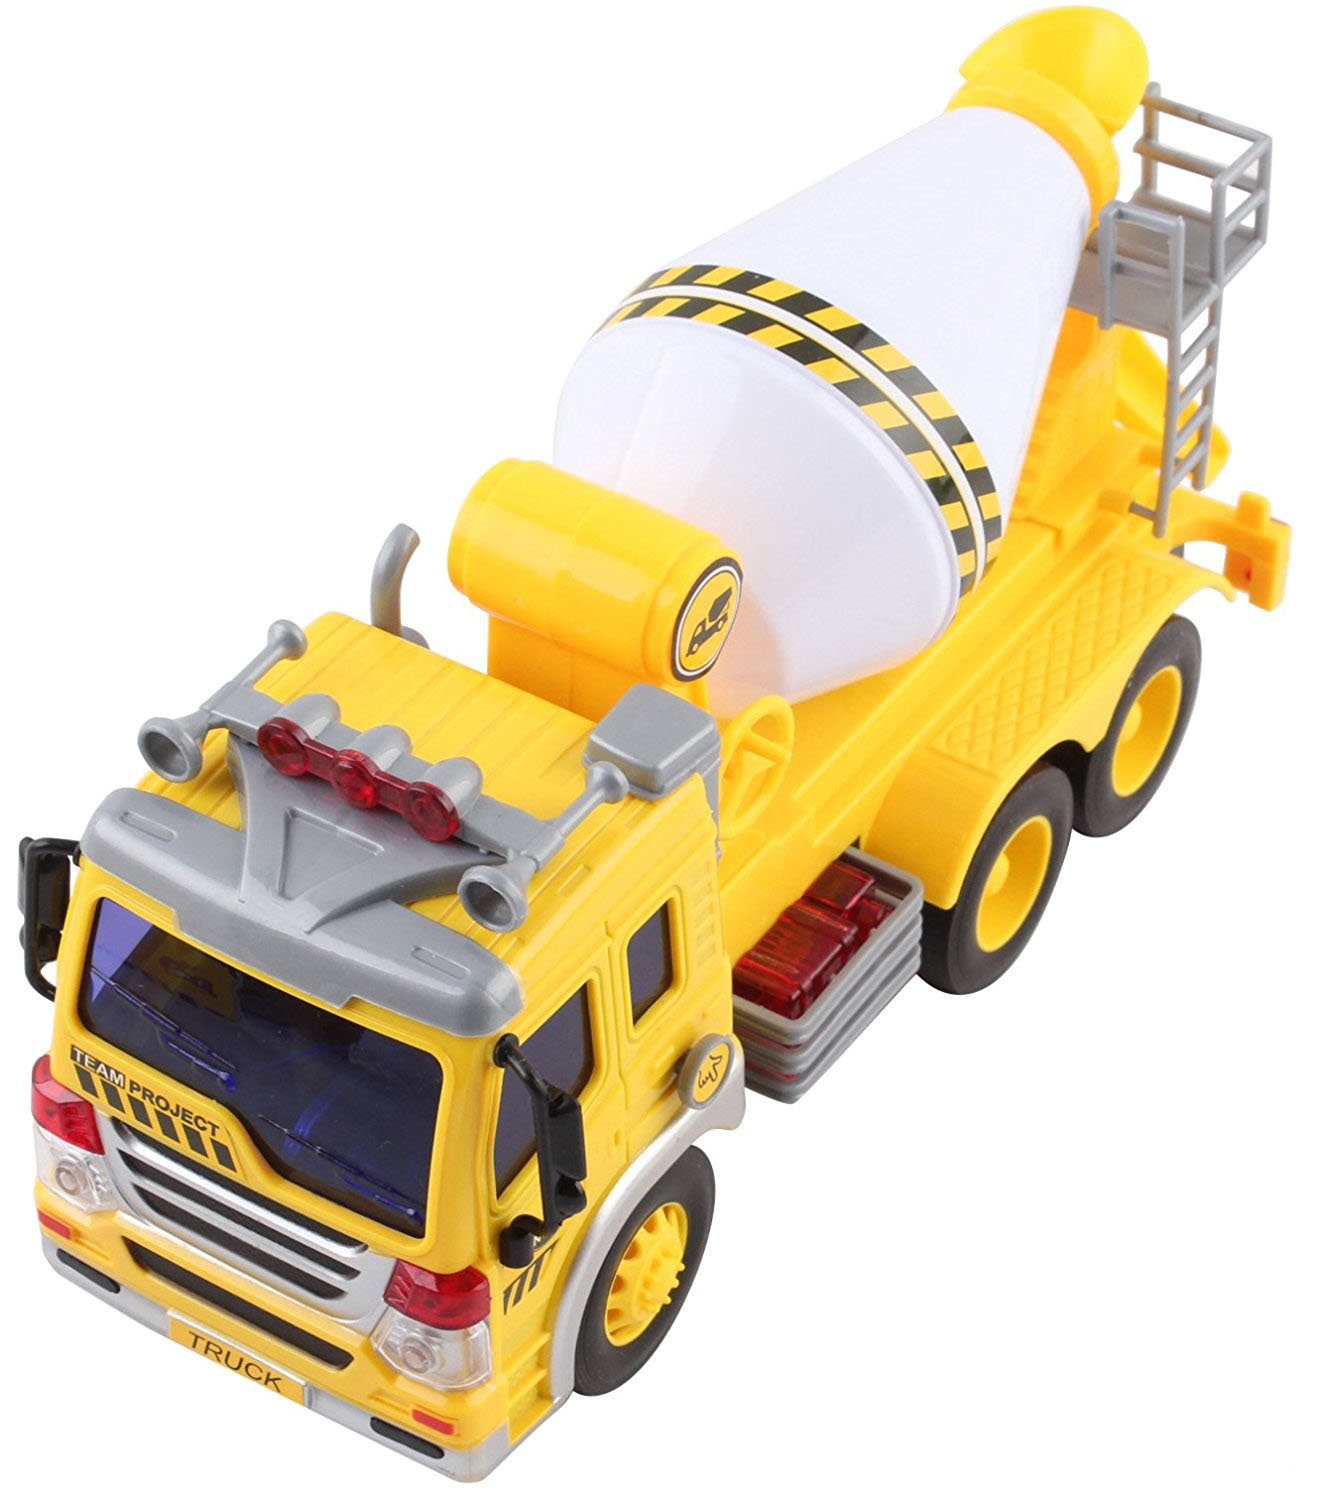 Enhances Children/'s Imagination Friction Power Mechanism Great Gift Colorful Outlook Playee Cement Mixer Toy Truck for Boys and Girls Bright Lights and Truck Sound Small But Handy